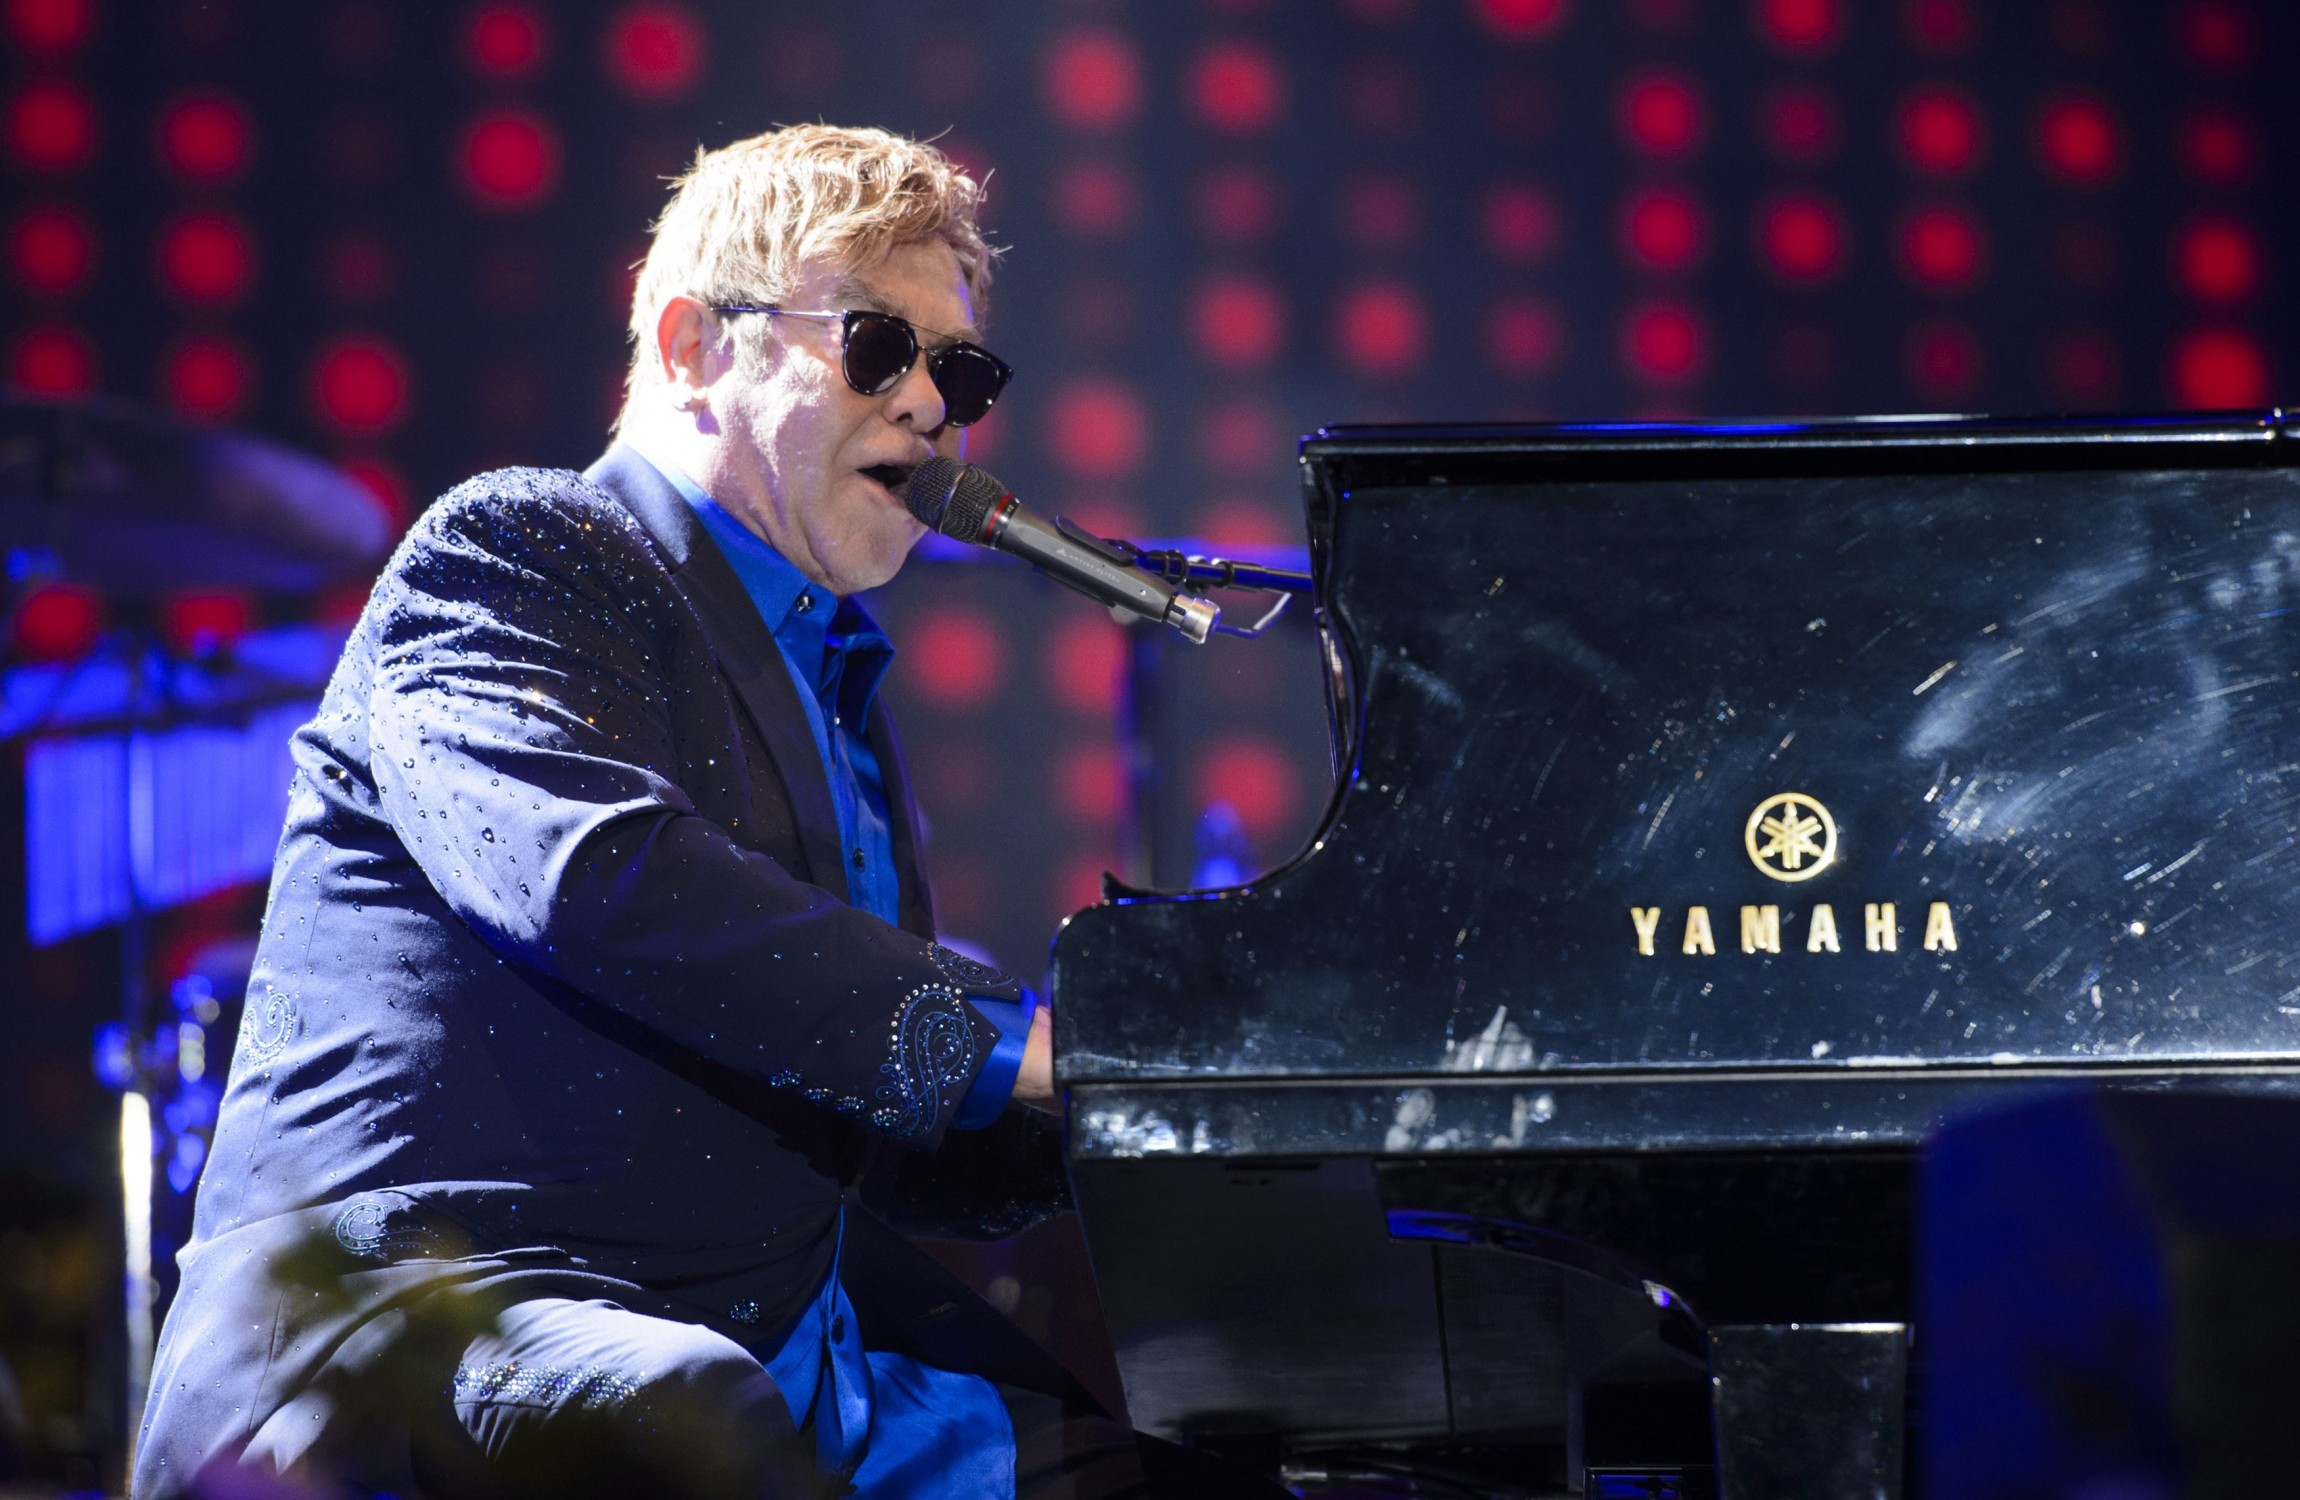 Teen JAILED for plotting bomb attack at Elton John concert